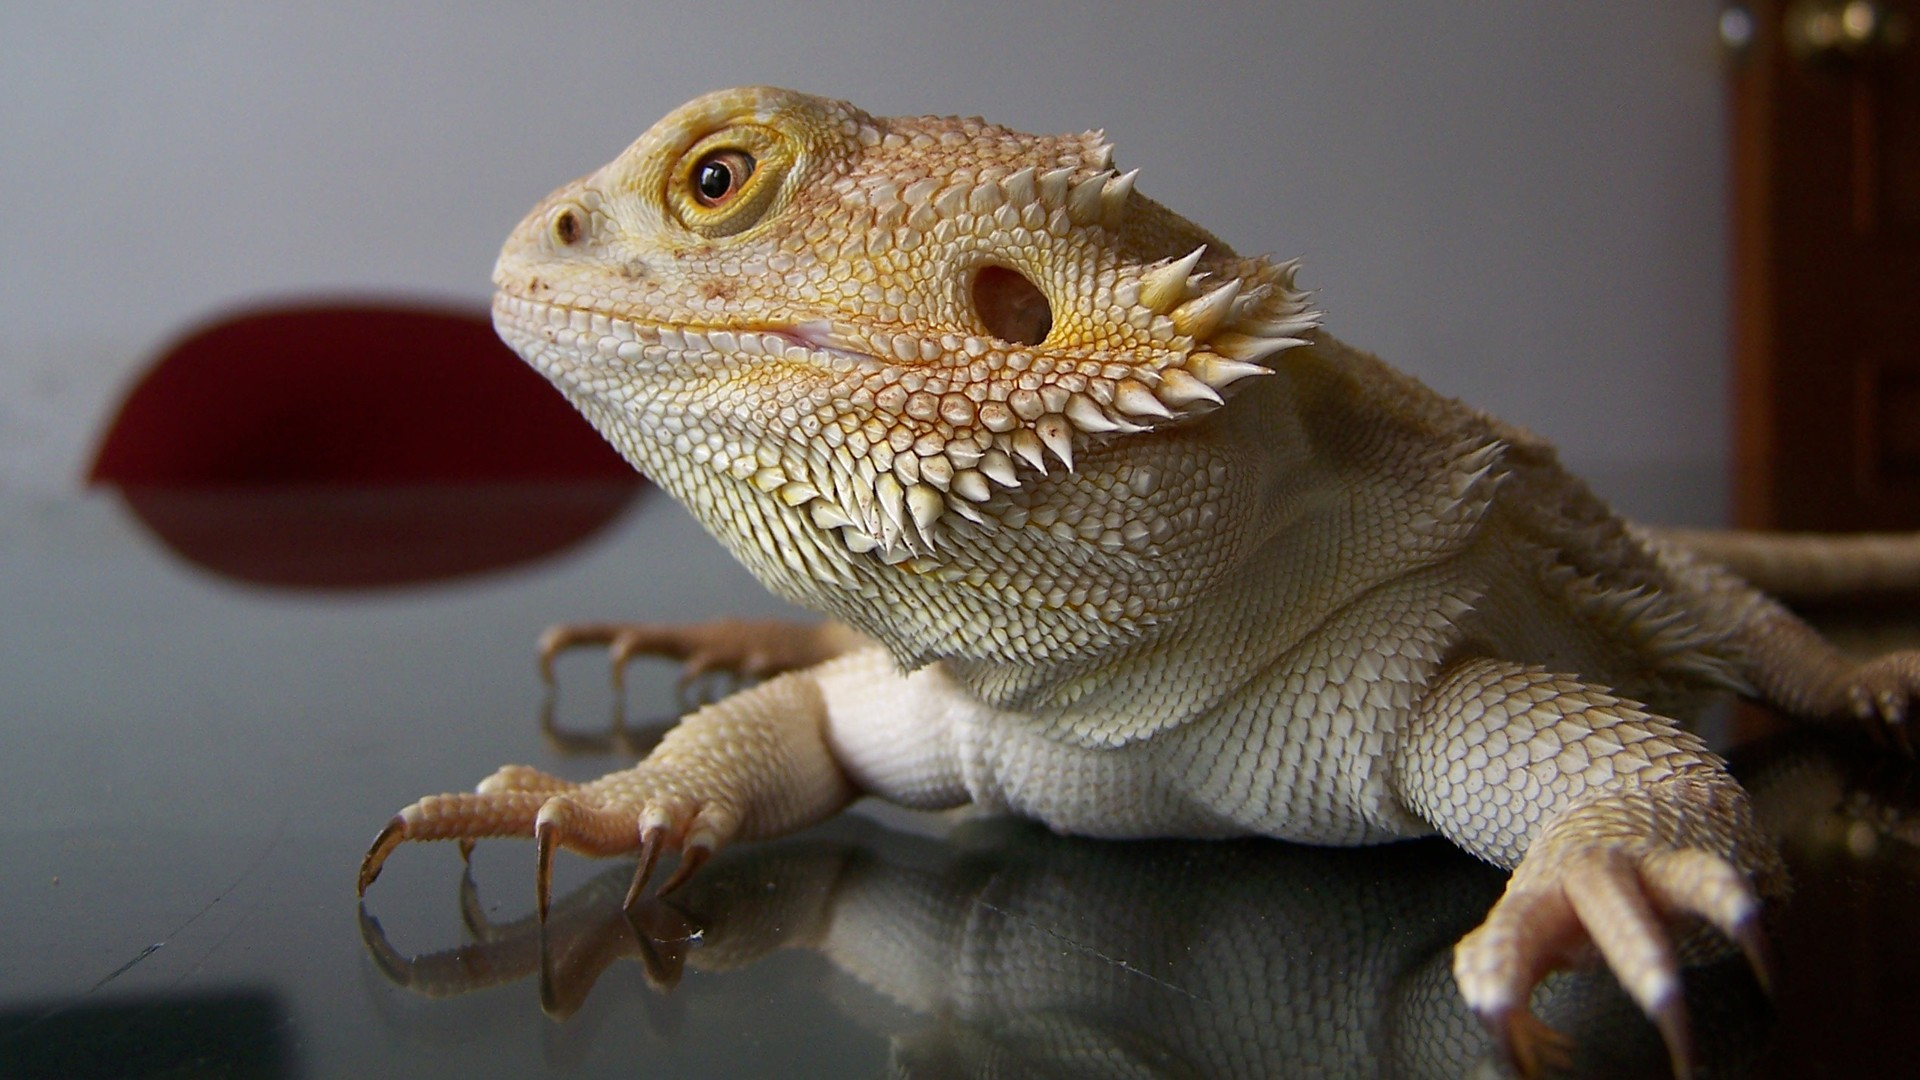 Cute Leopard Gecko Wallpaper Lizards Images Bearded Dragon Hd Wallpaper And Background